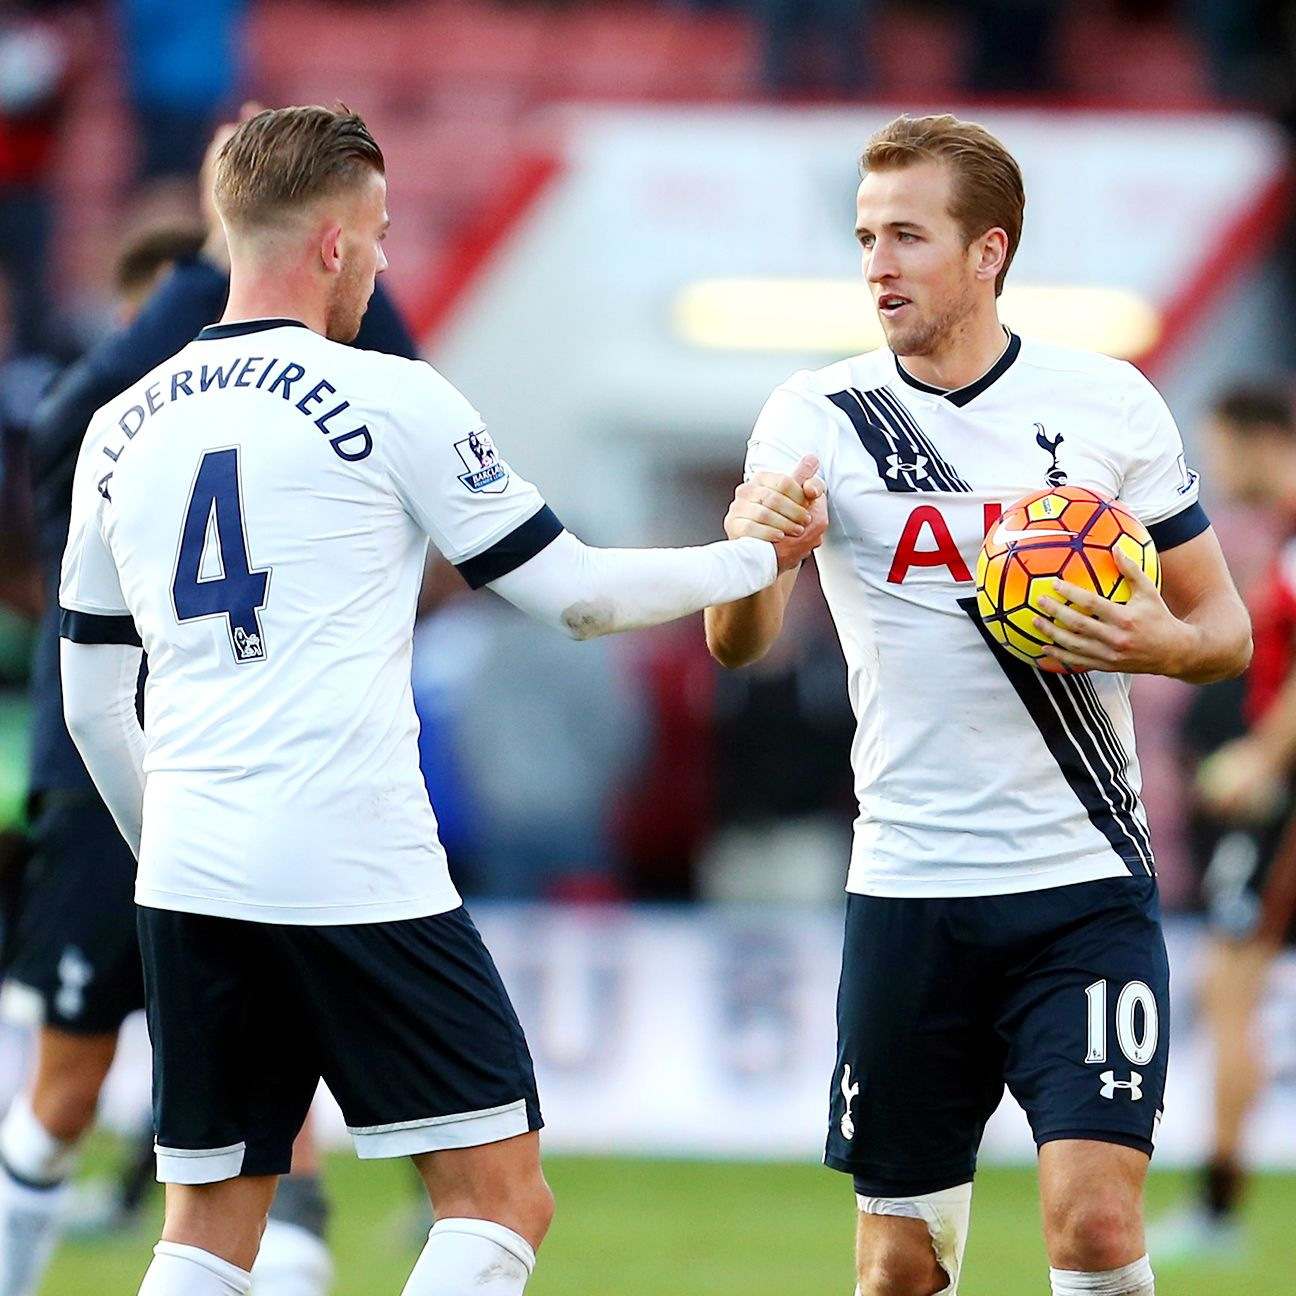 Tottenham's Premier League unbeaten streak stretches back to week one.